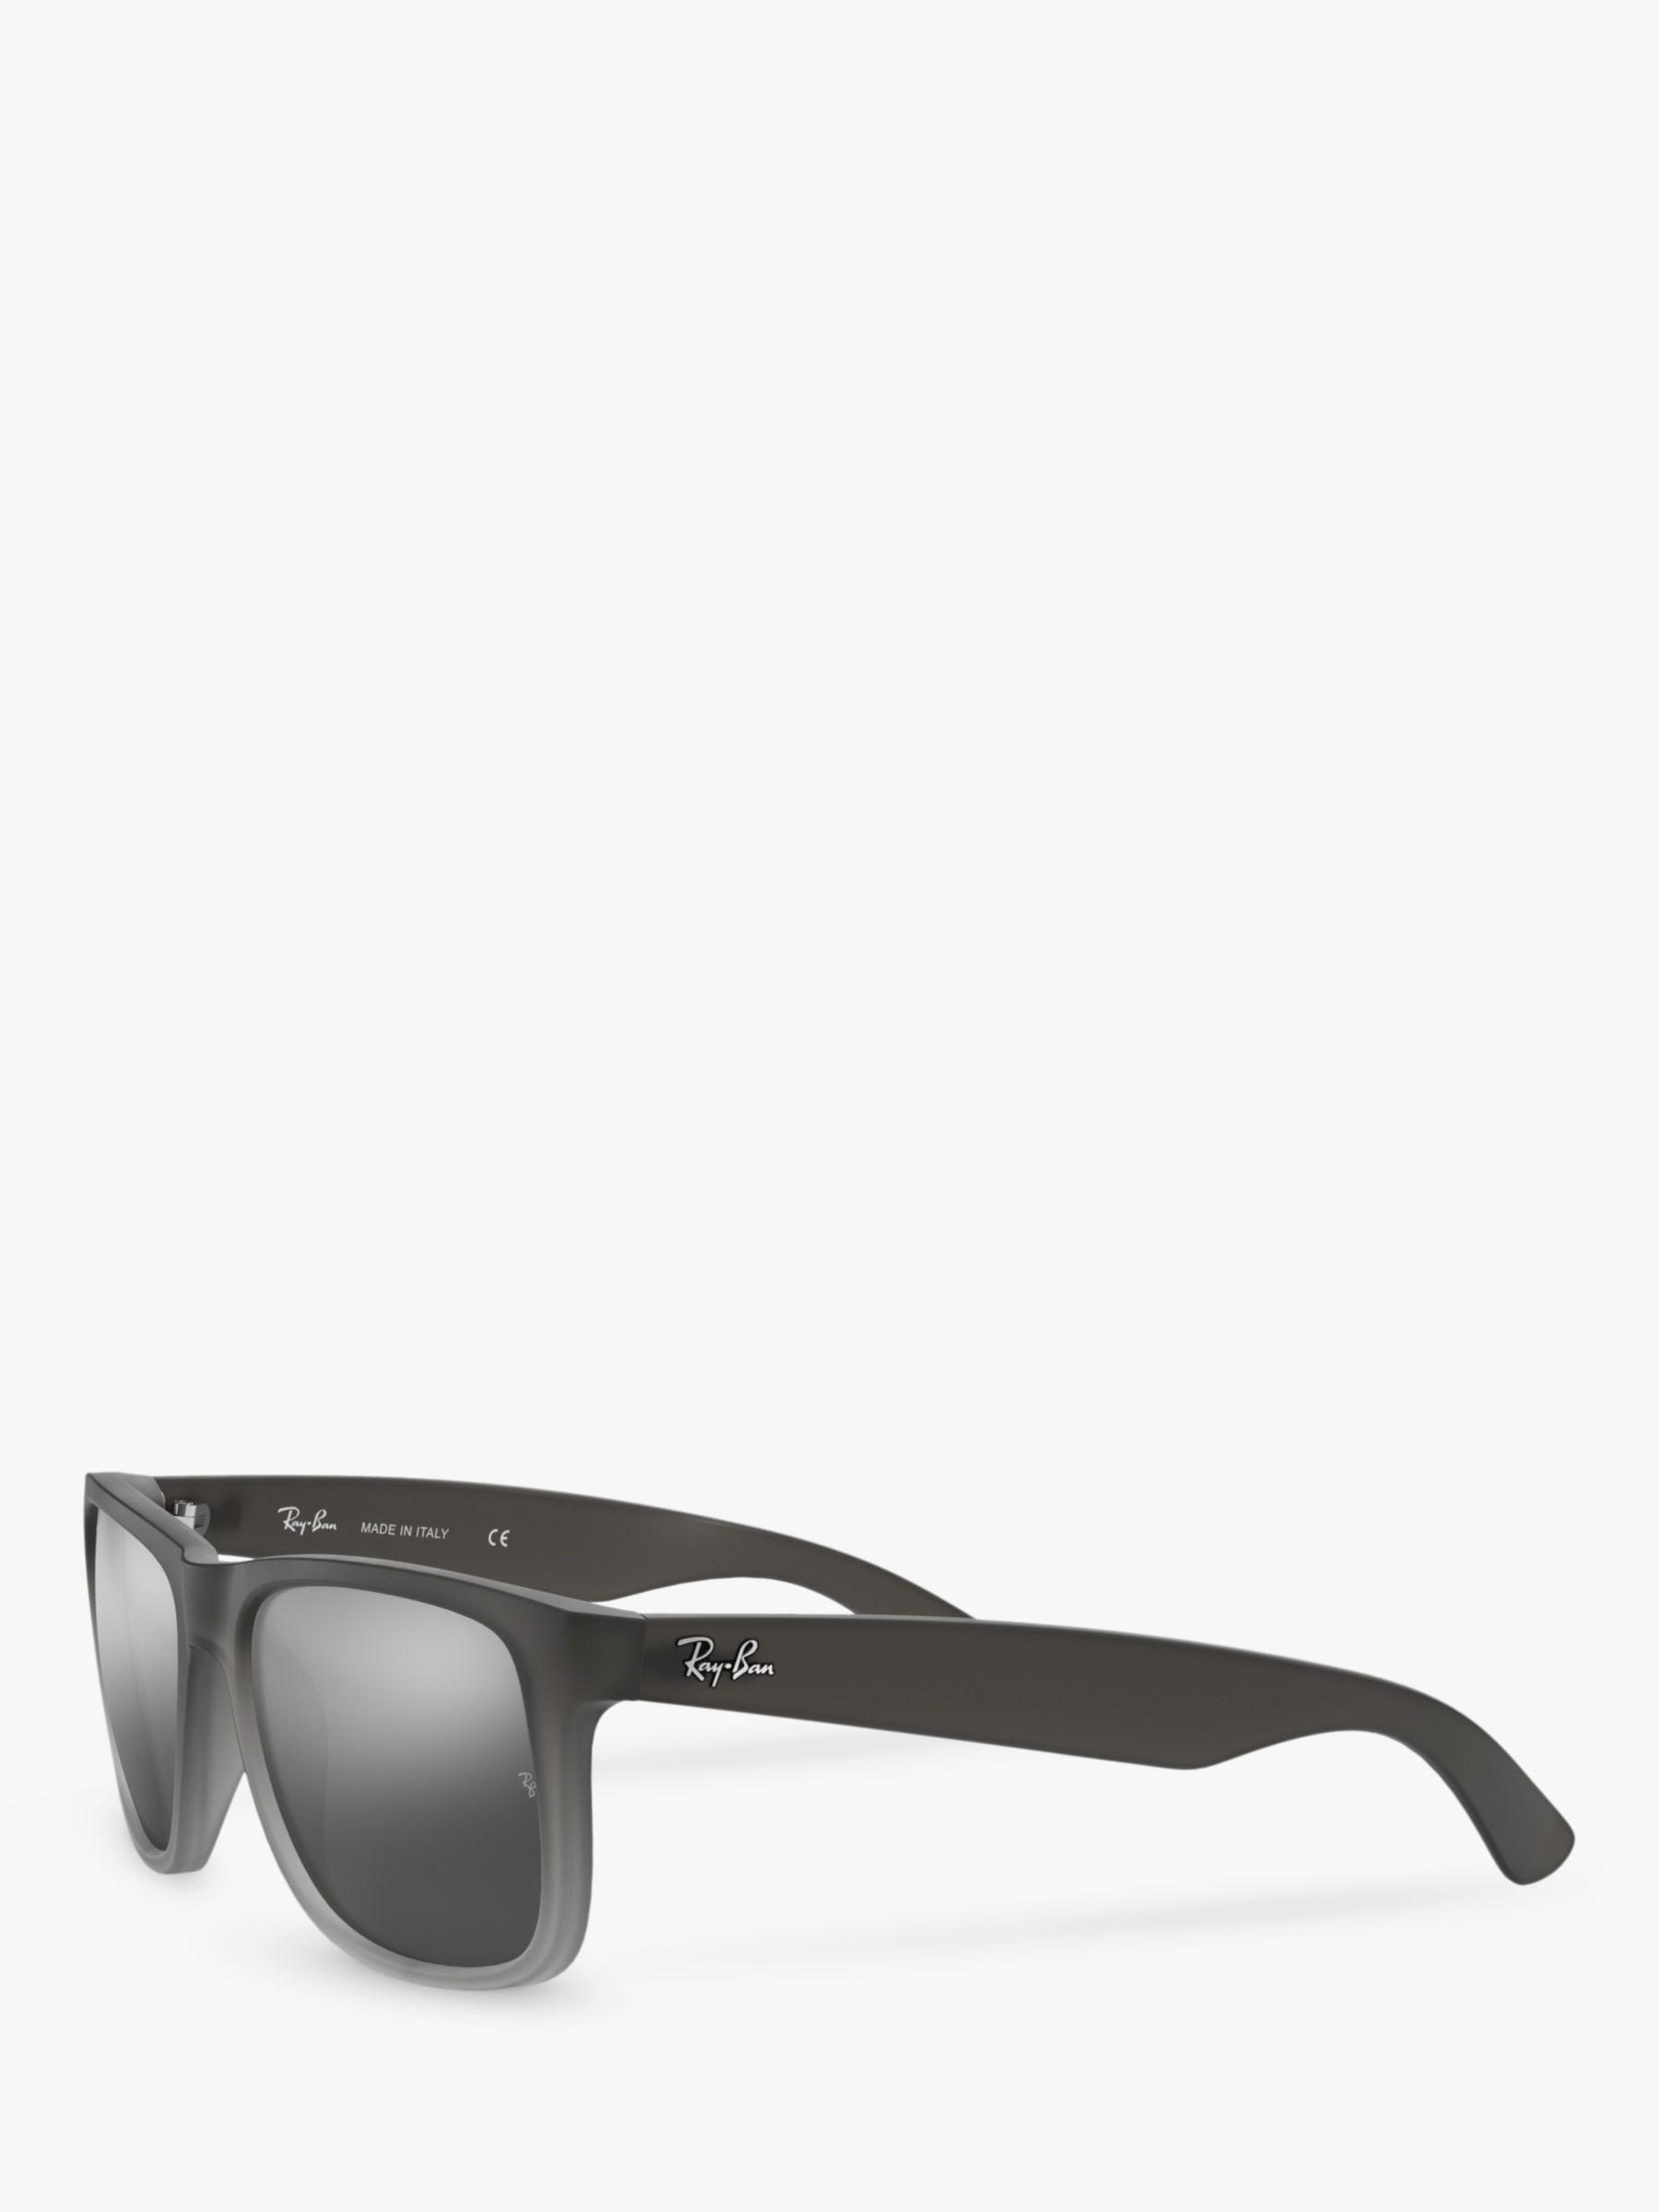 efdc1fa6fcb Ray-Ban Rb4165 Men s Justin Rectangular Sunglasses in Gray for Men - Lyst